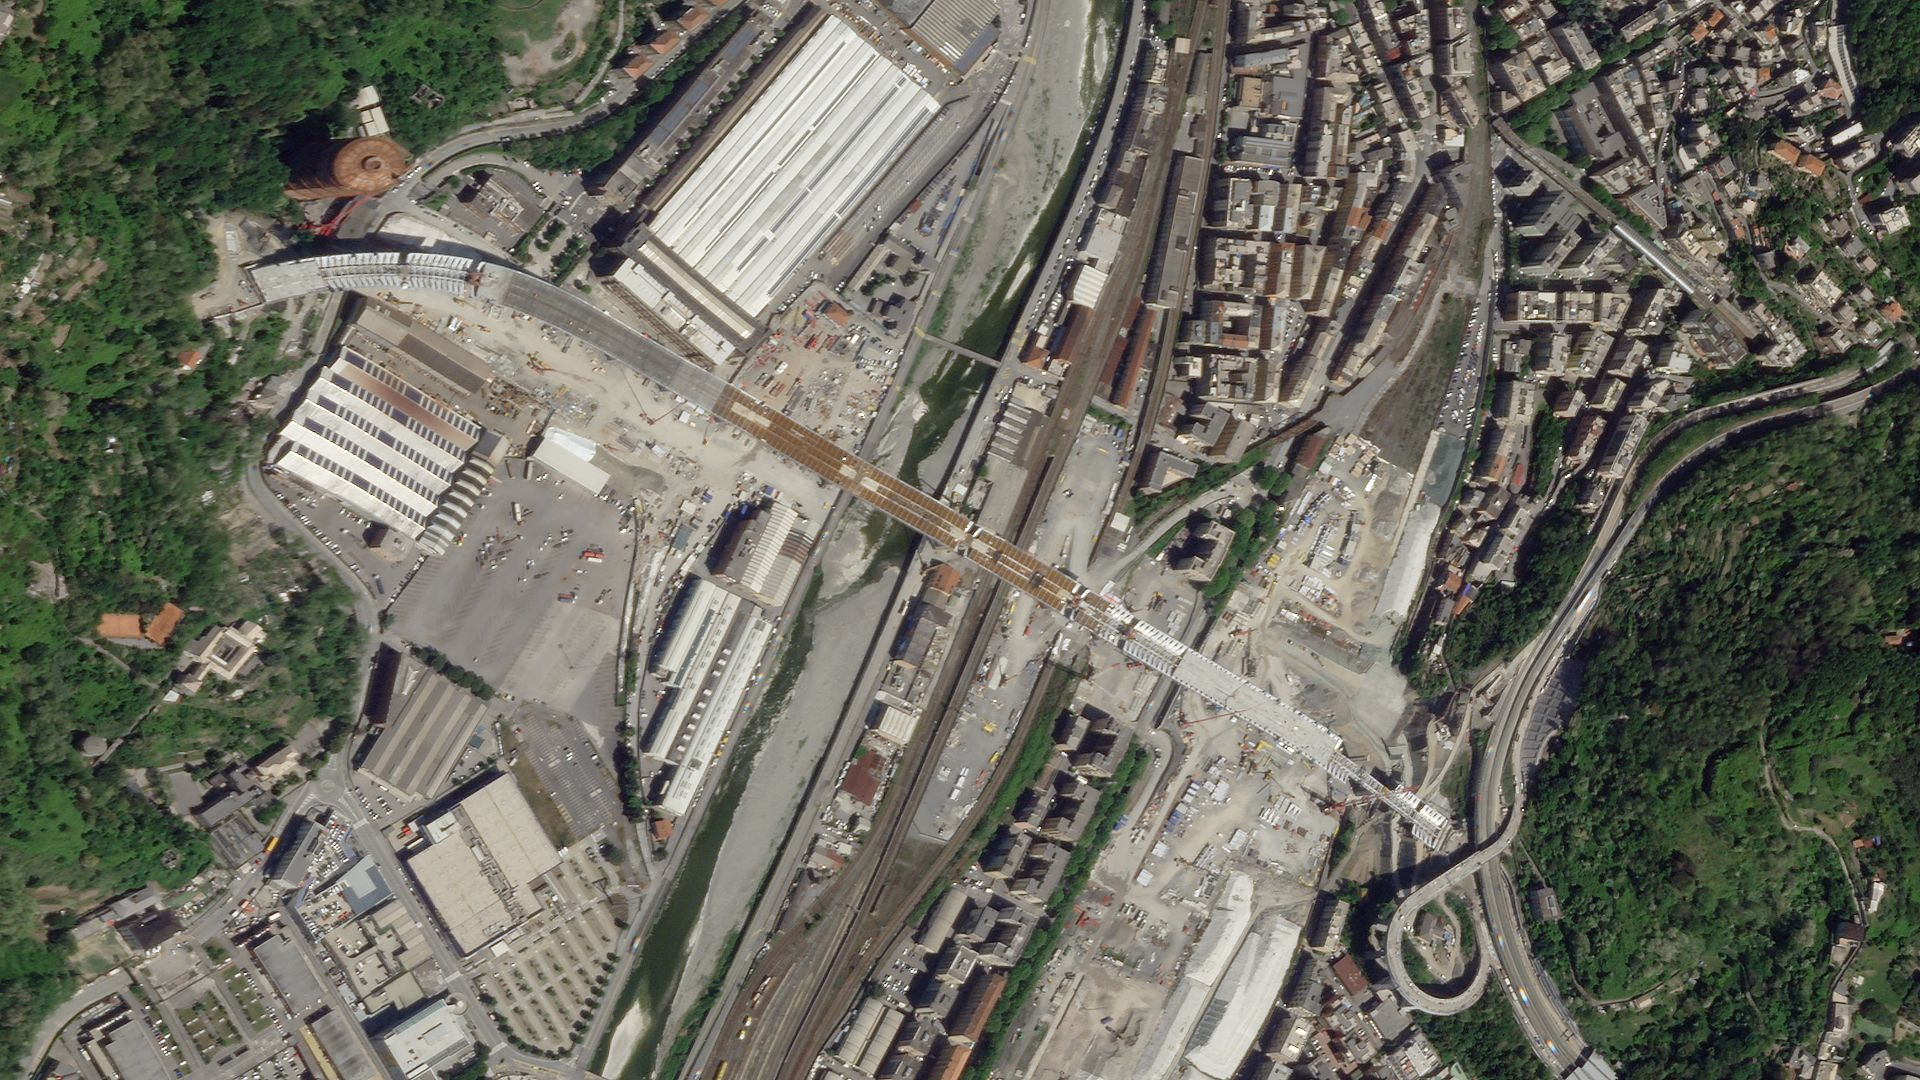 SkySat image of Genoa, Italy on May 4, 2020 © 2020, Planet Labs Inc. All Rights Reserved.